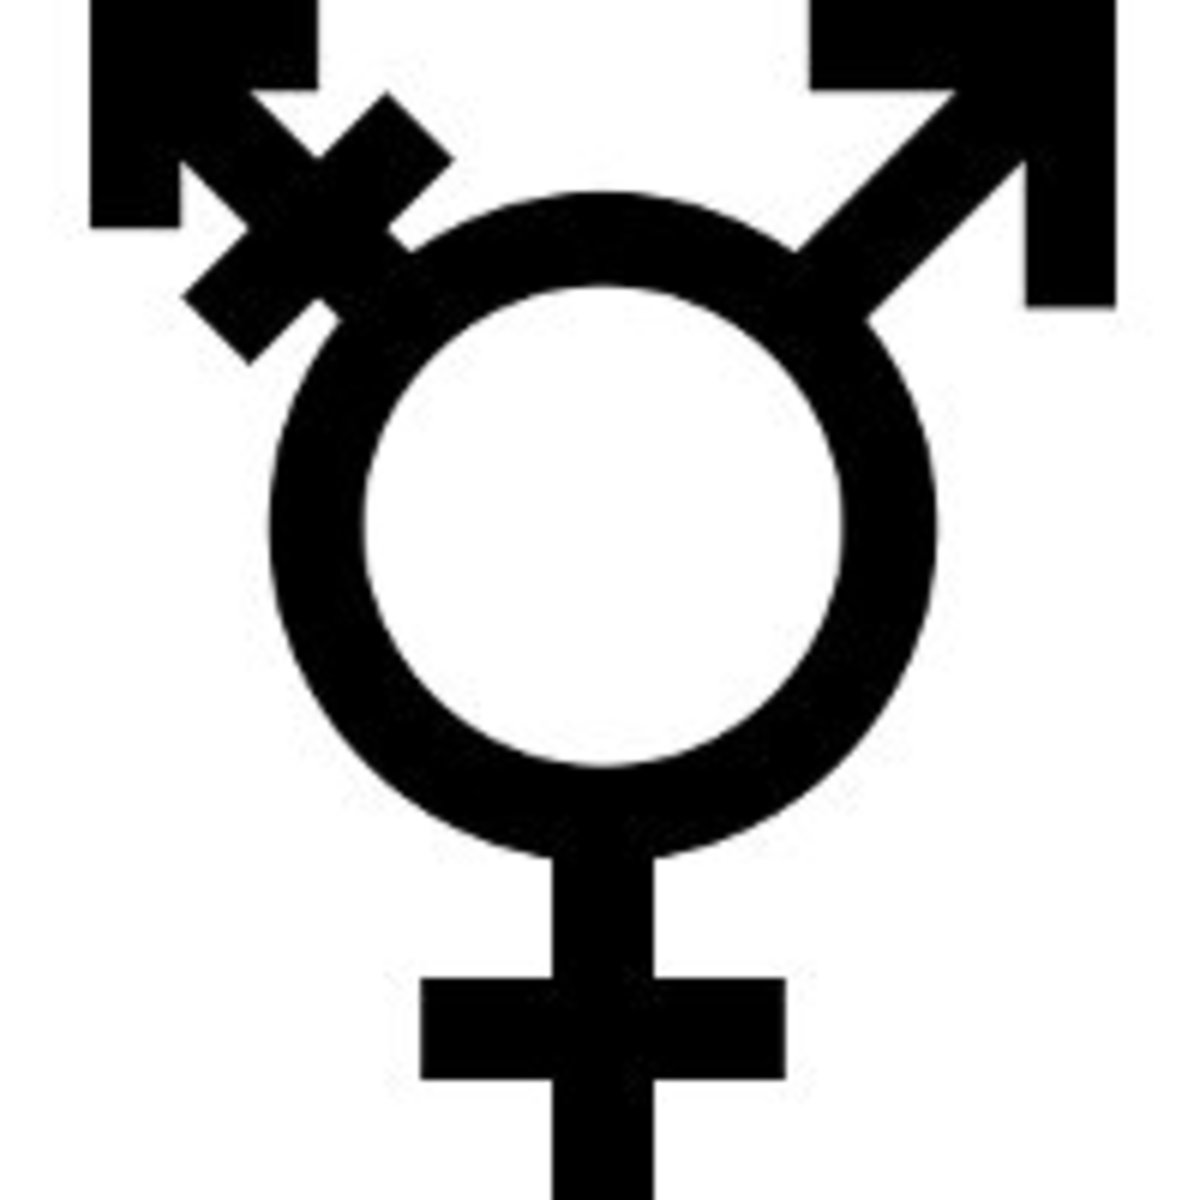 One variant of the transgender symbol